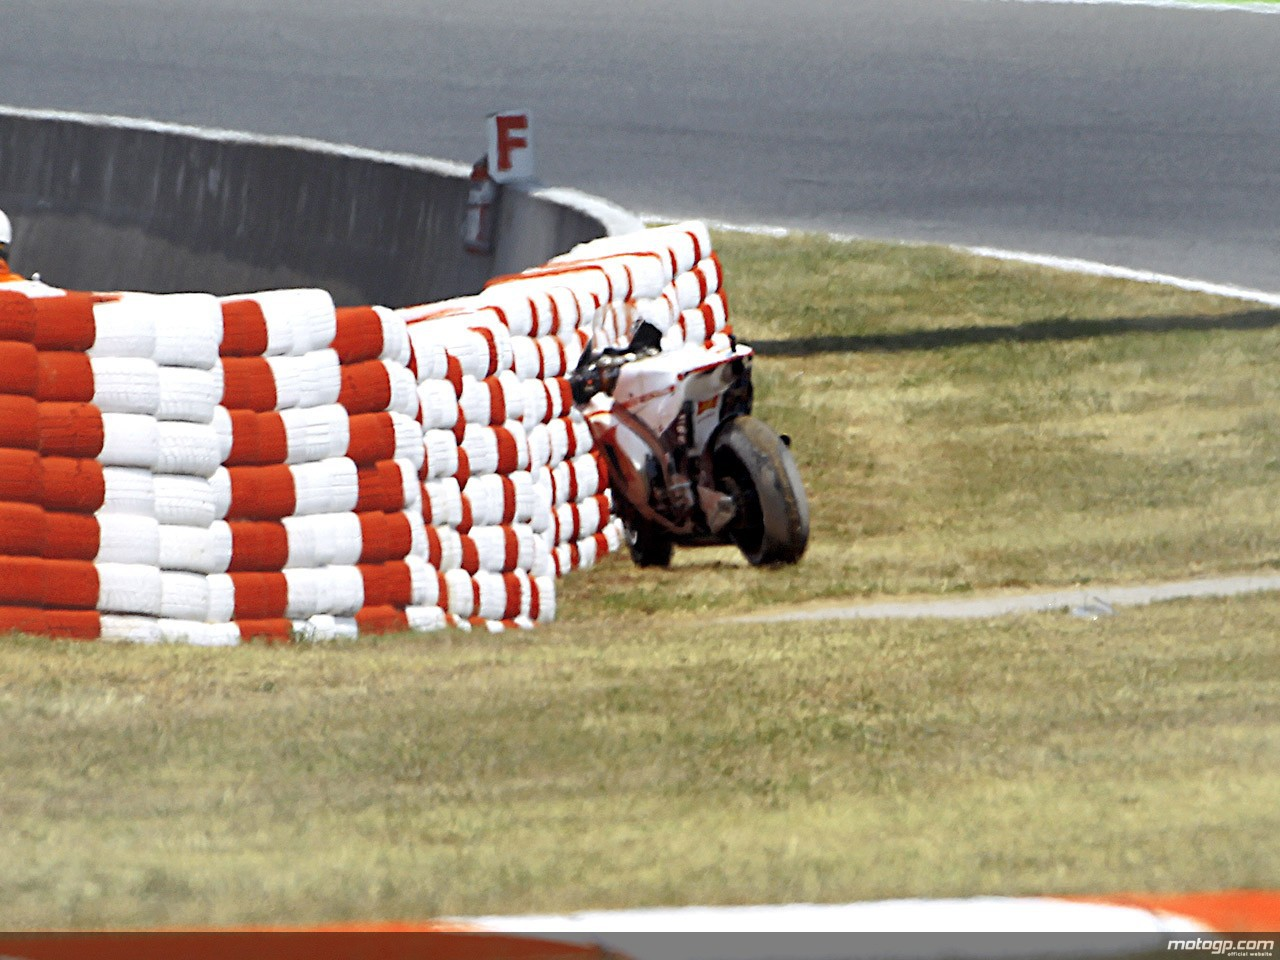 Motogp Accident